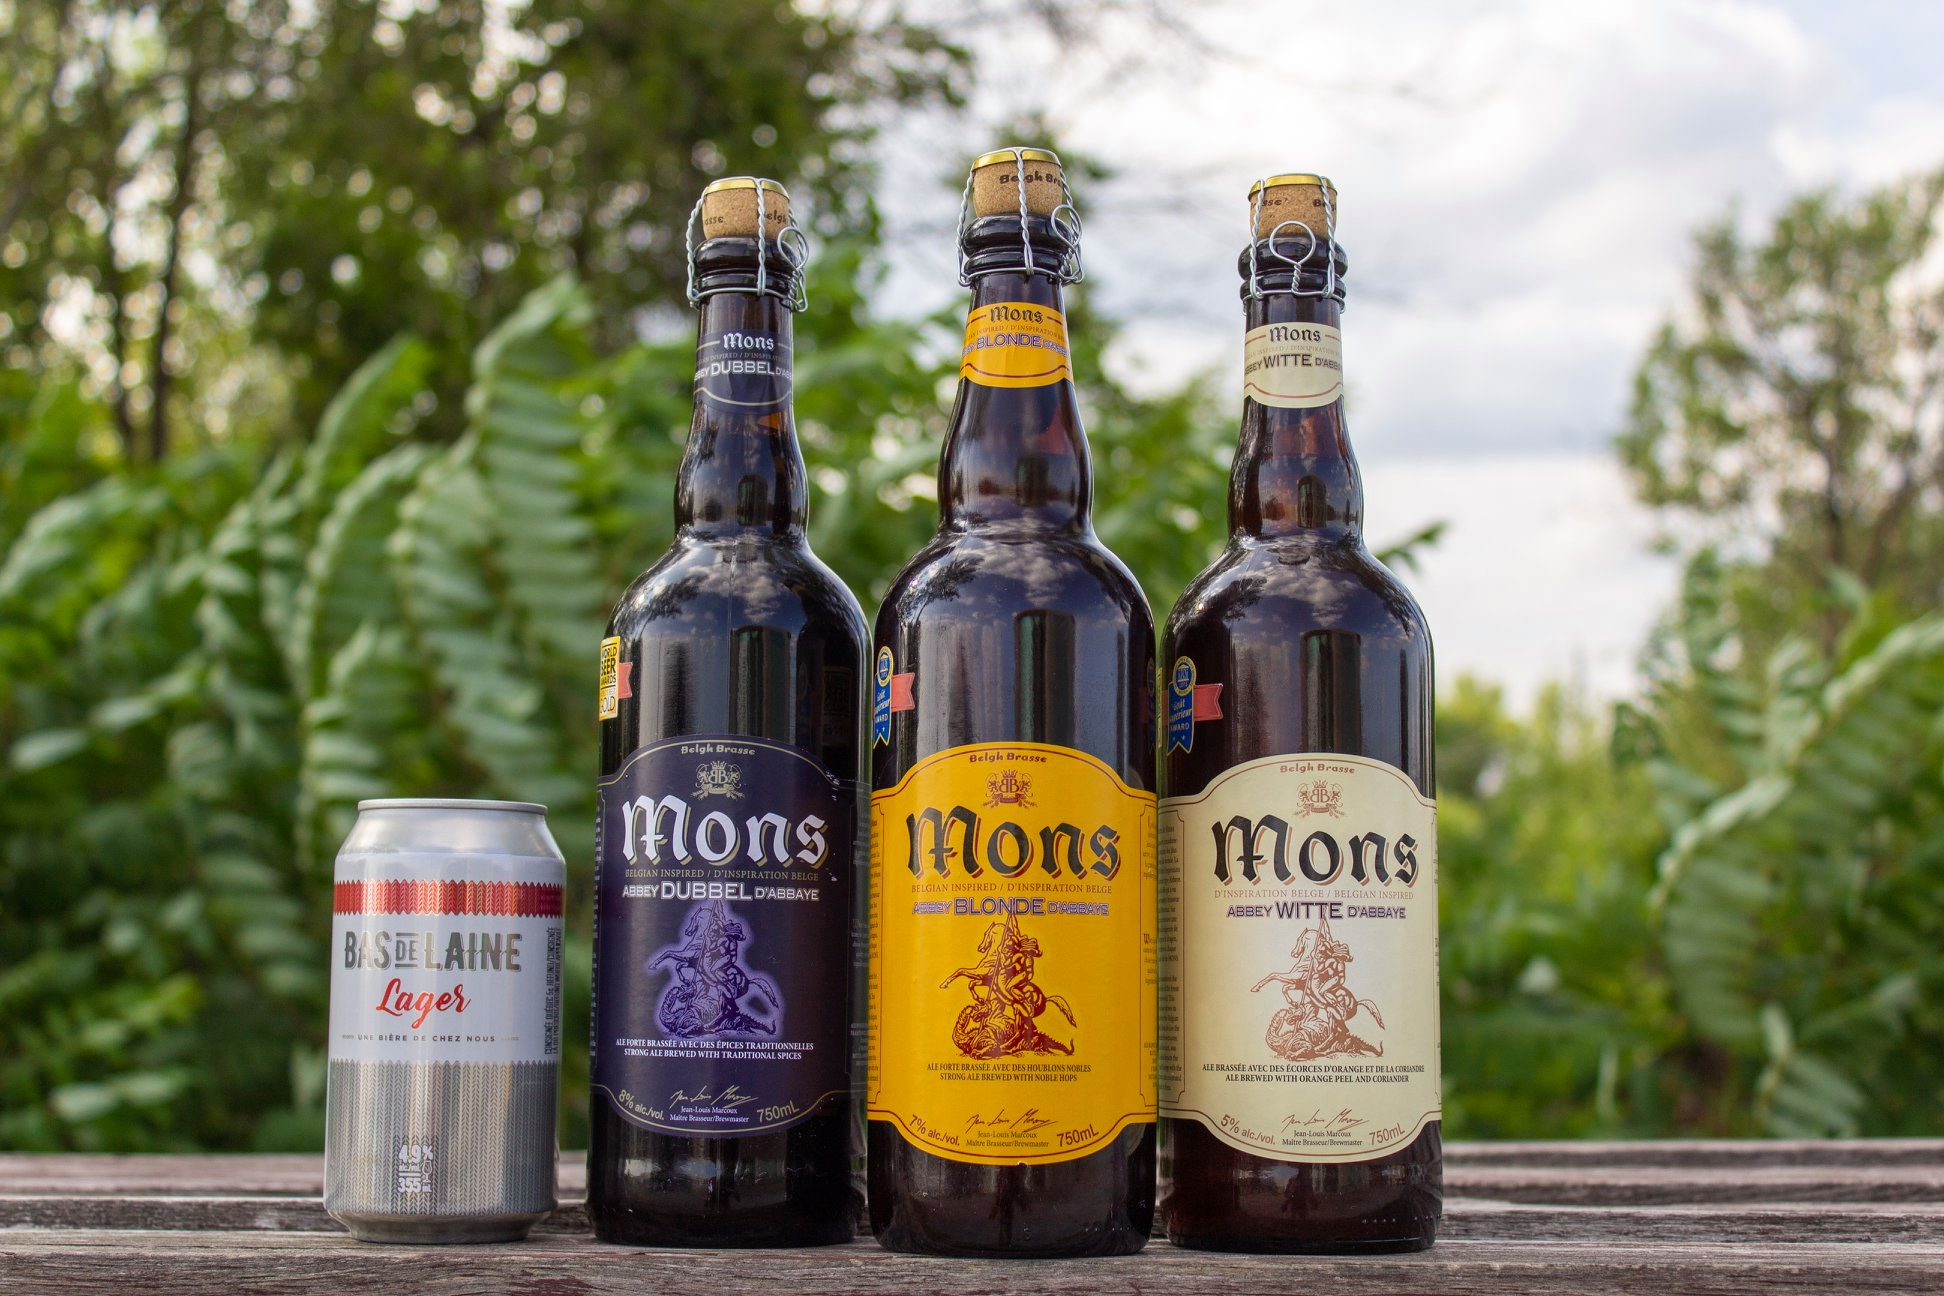 4 medals at the World Beer Awards!